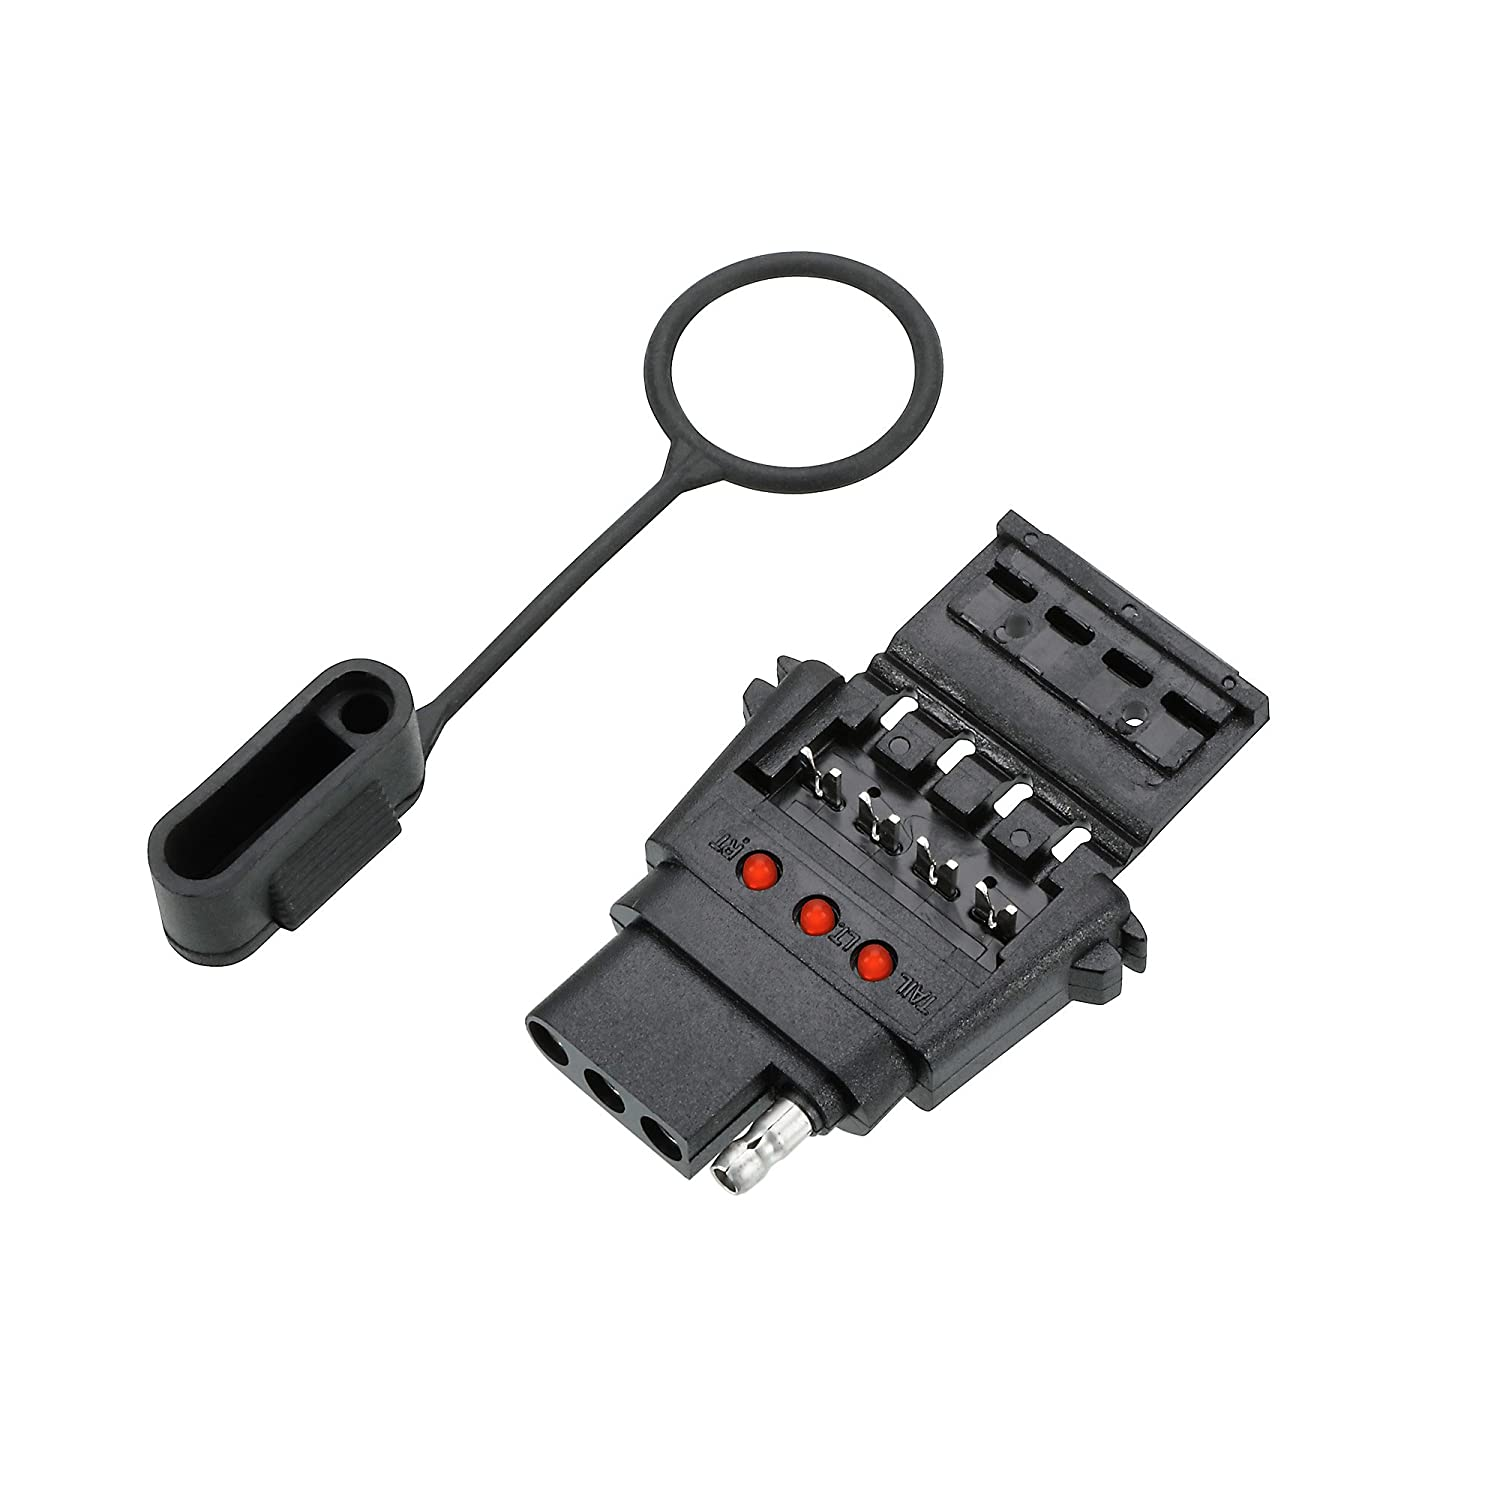 4 Wire Flat Reese Towpower 78114 Insta-Plug Vehicle End Connector with LED Circuit Tester